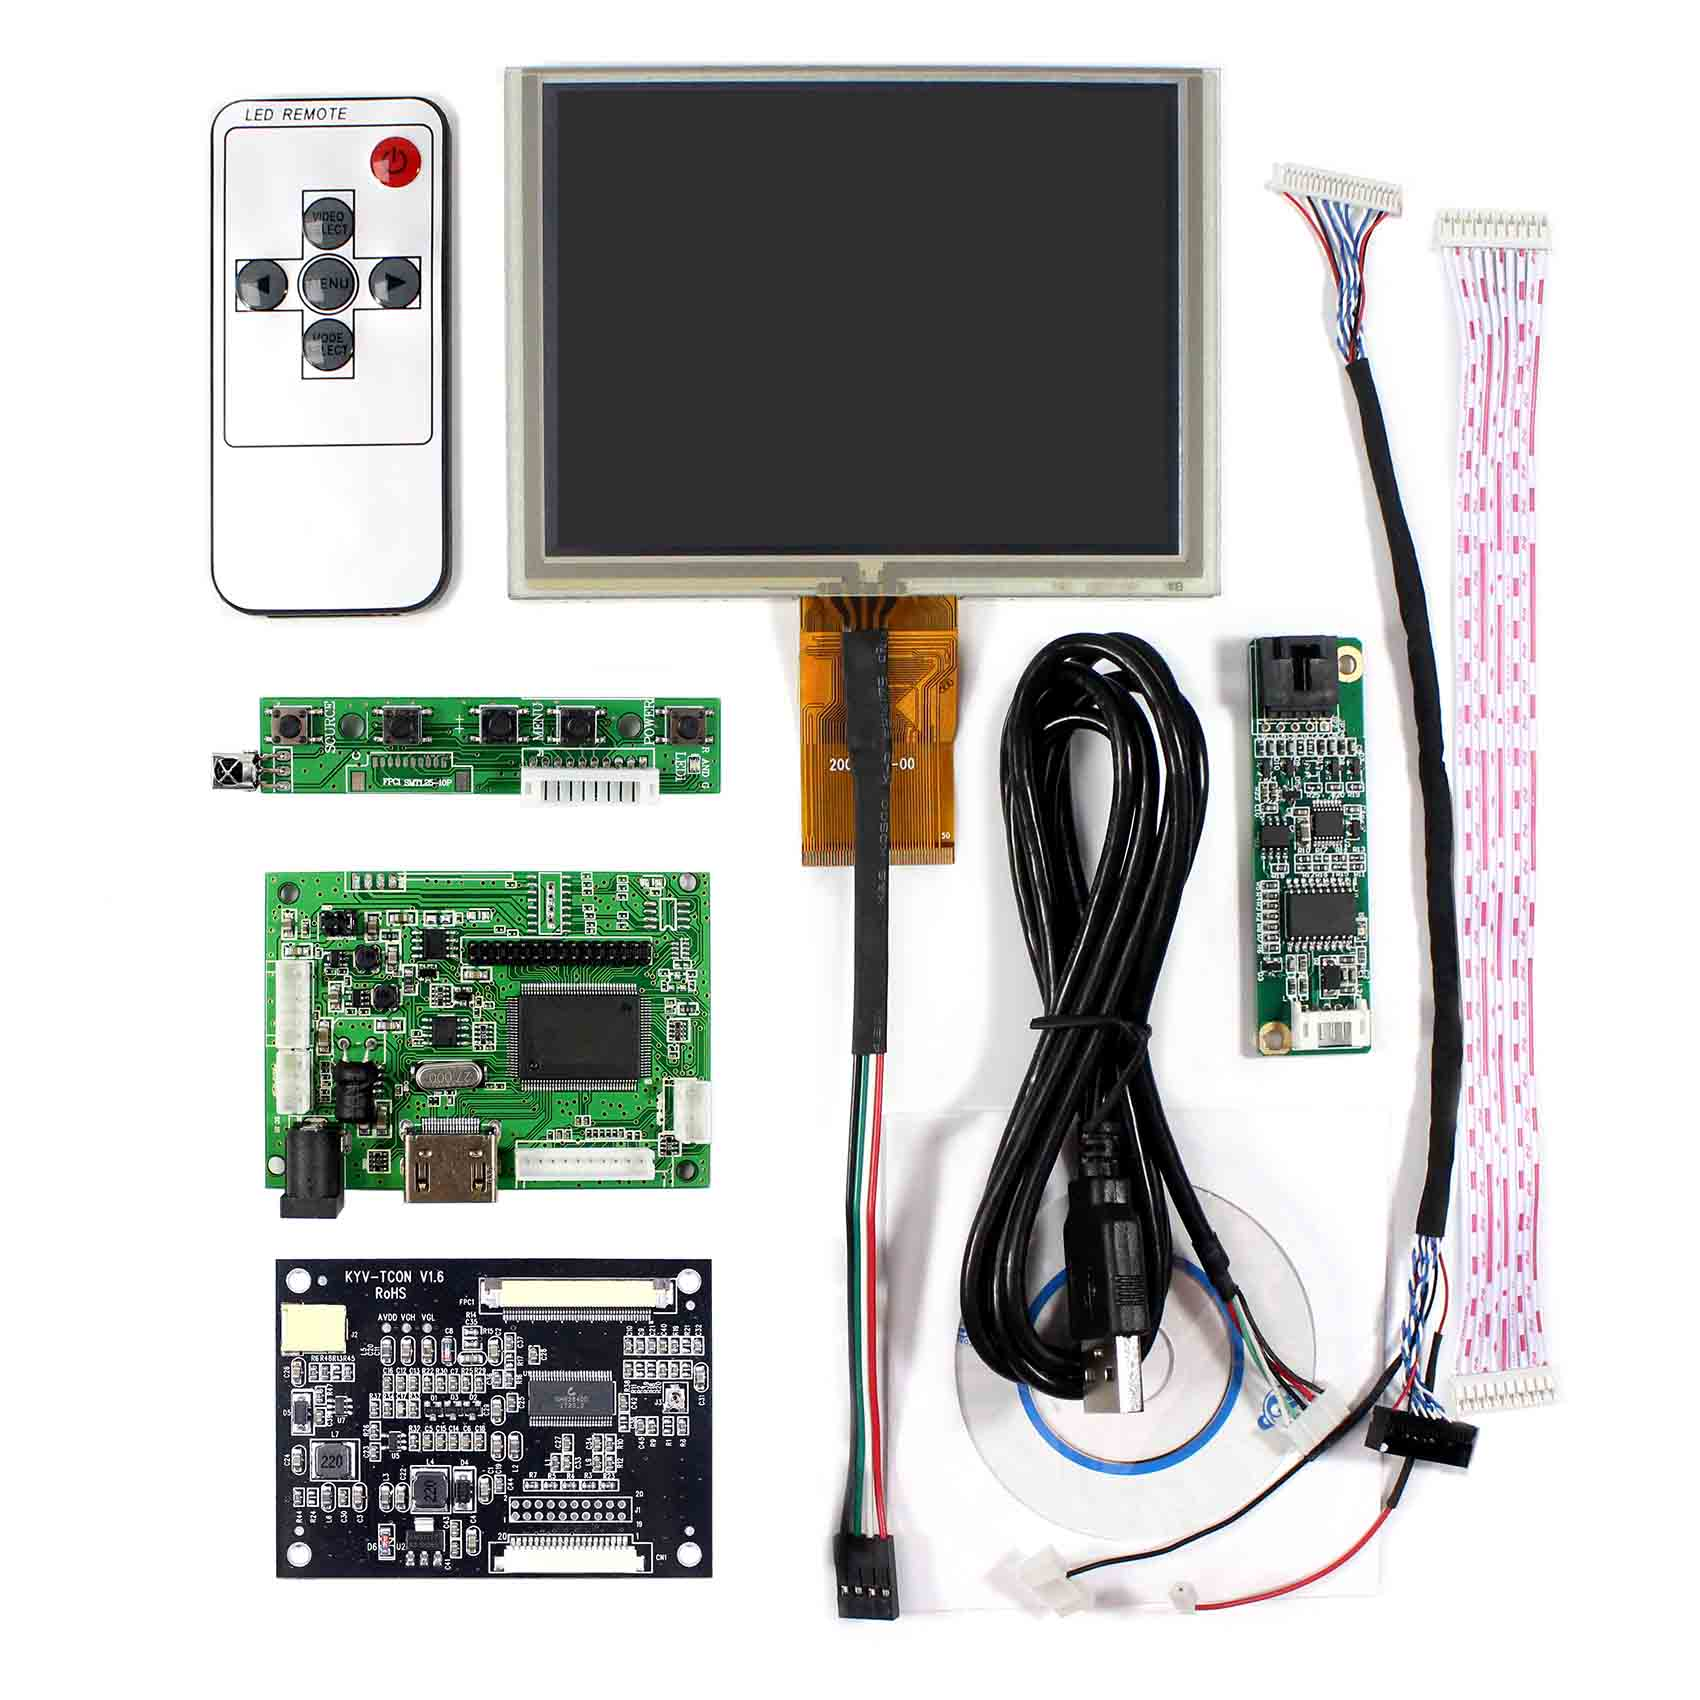 Buy Hdmi Lcd Controller Board Vs 2660h V1 5inch Wiring Bee 640x480 Zj050na 08c With Touch Panel From Reliable Suppliers On